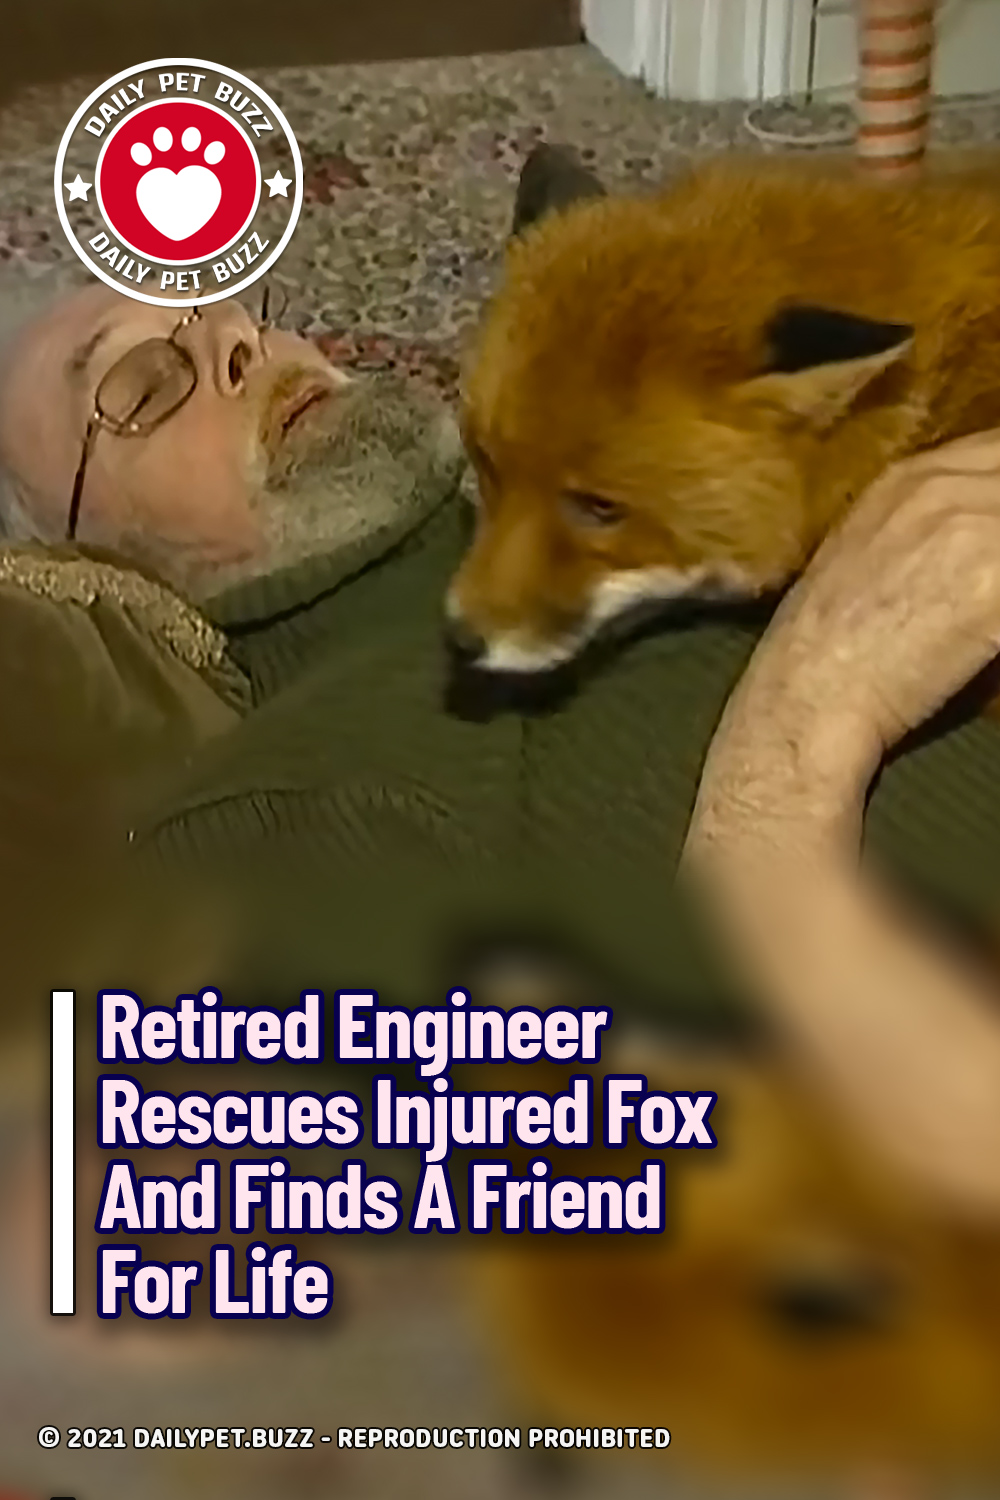 Retired Engineer Rescues Injured Fox And Finds A Friend For Life